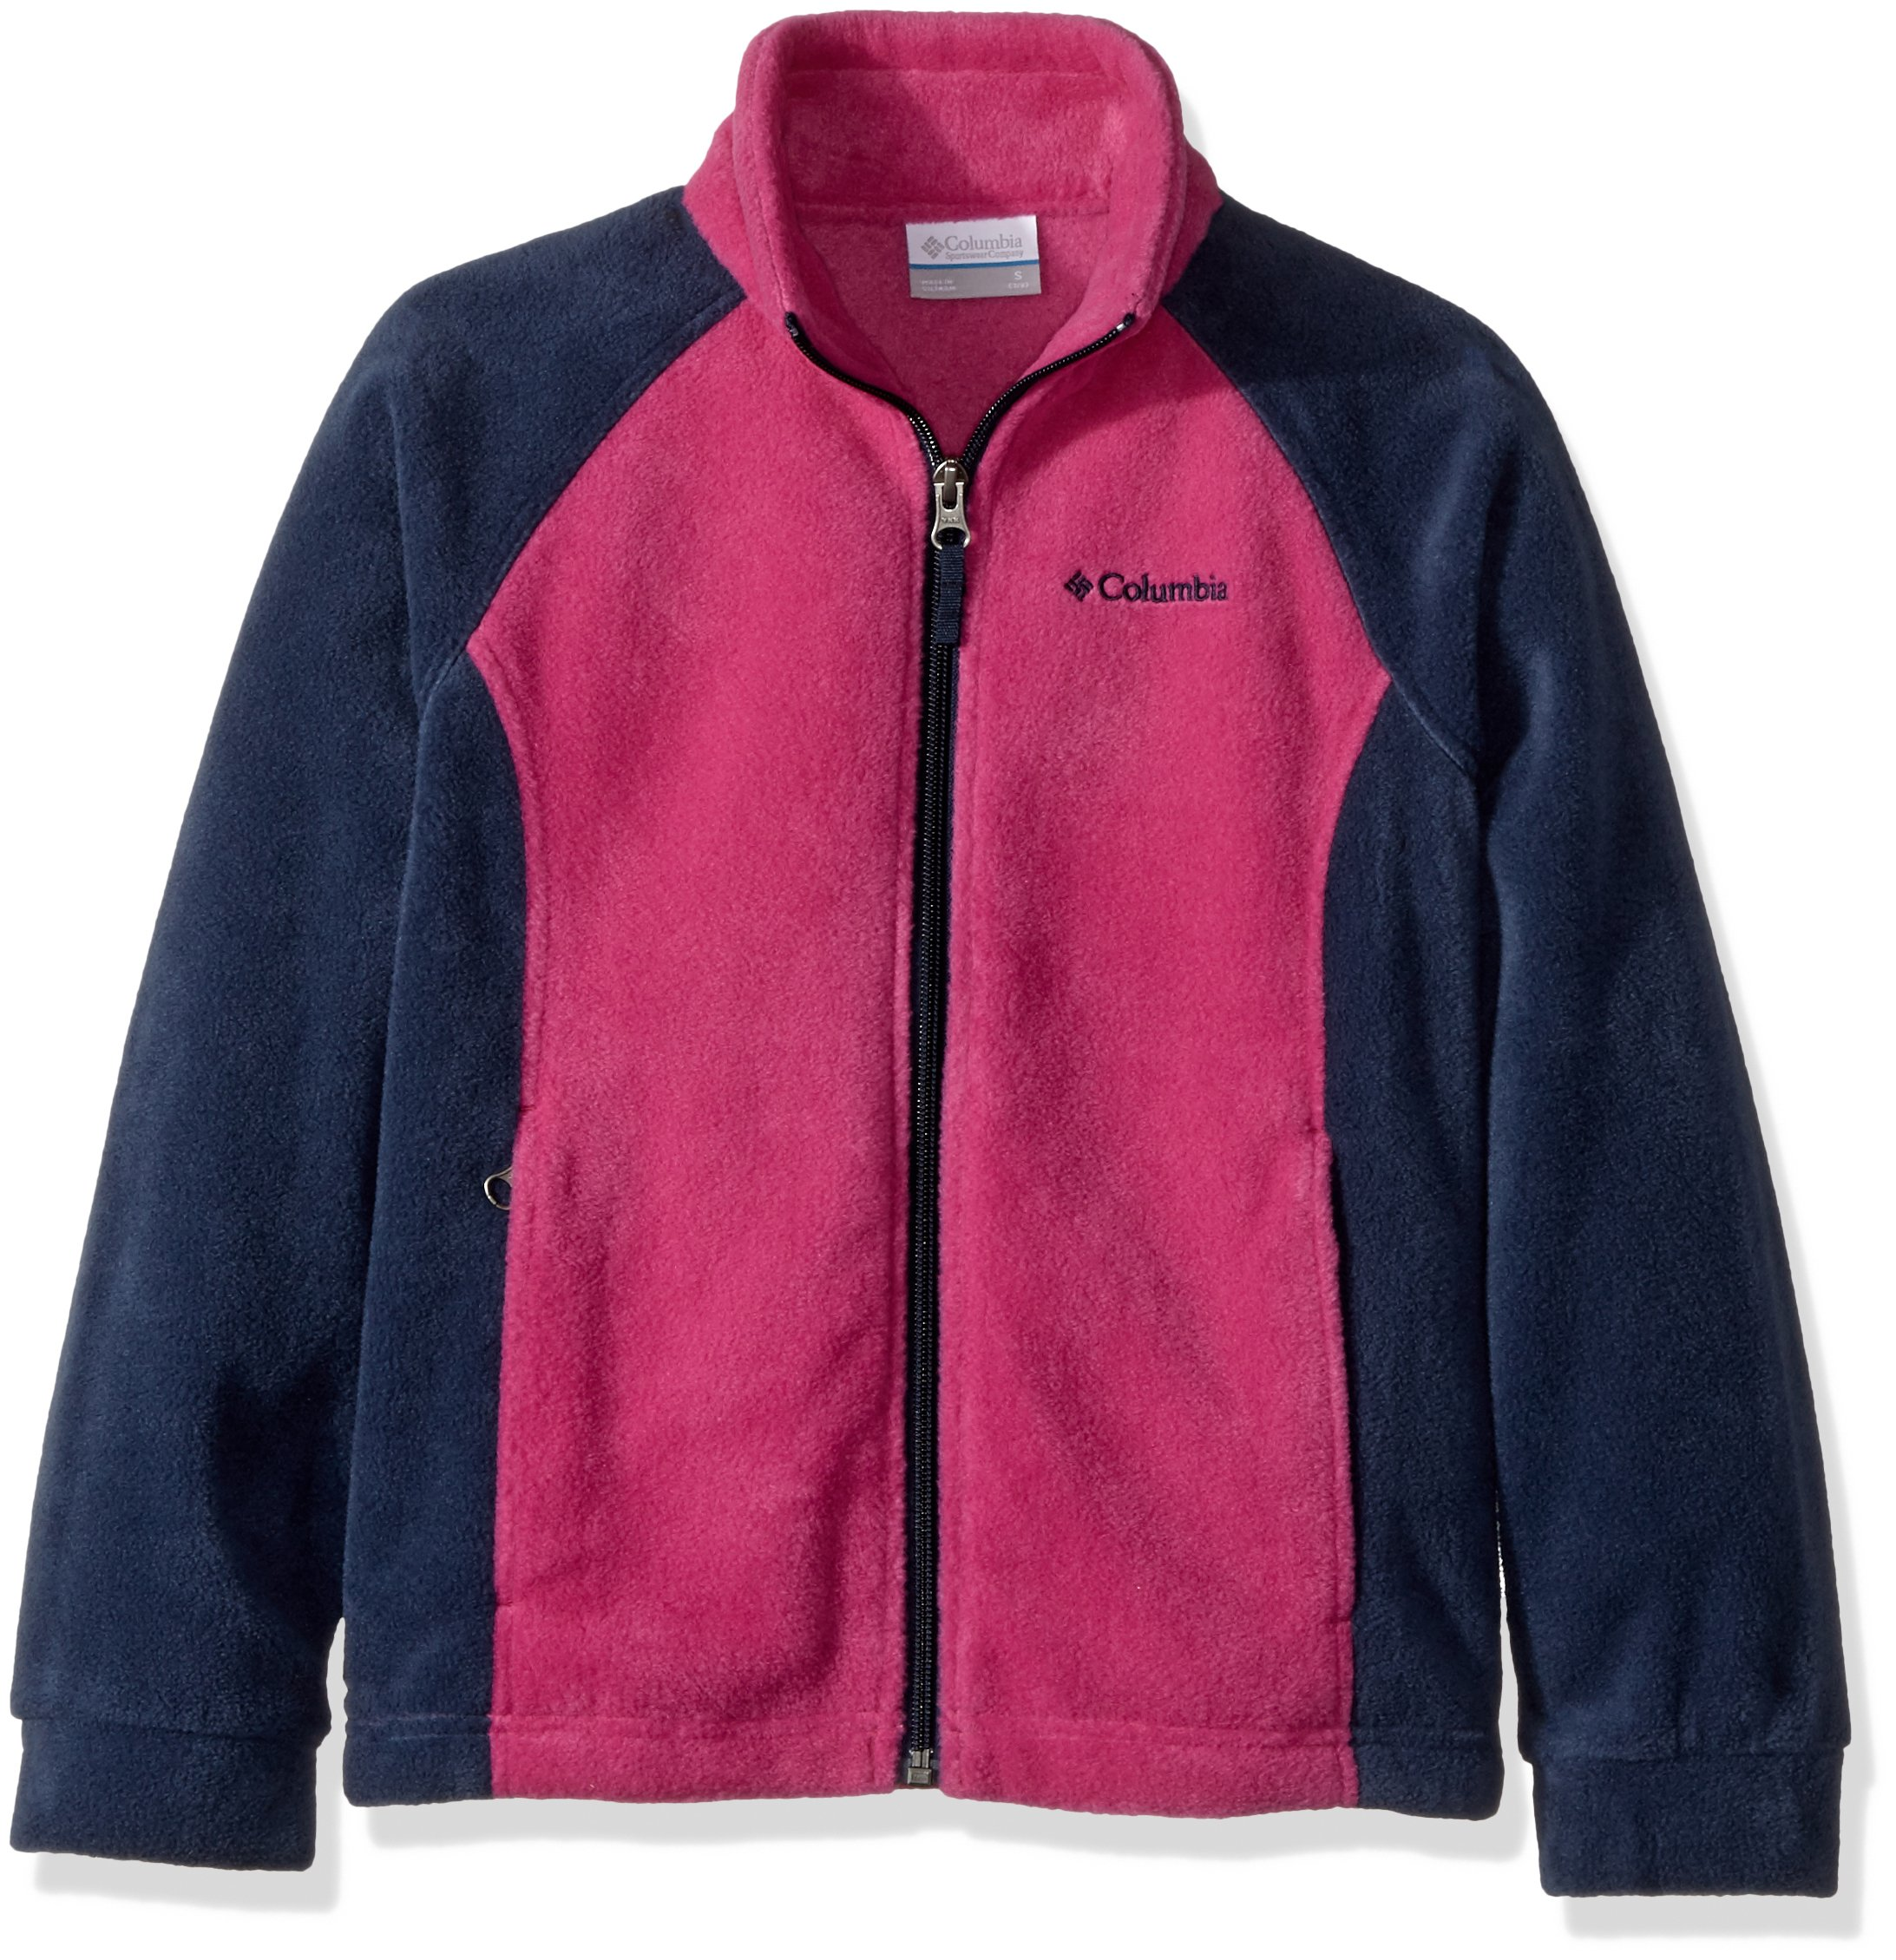 Columbia Little Girls' Benton Springs Fleece Jacket, Deep Blush, Collegiate Navy, 4T